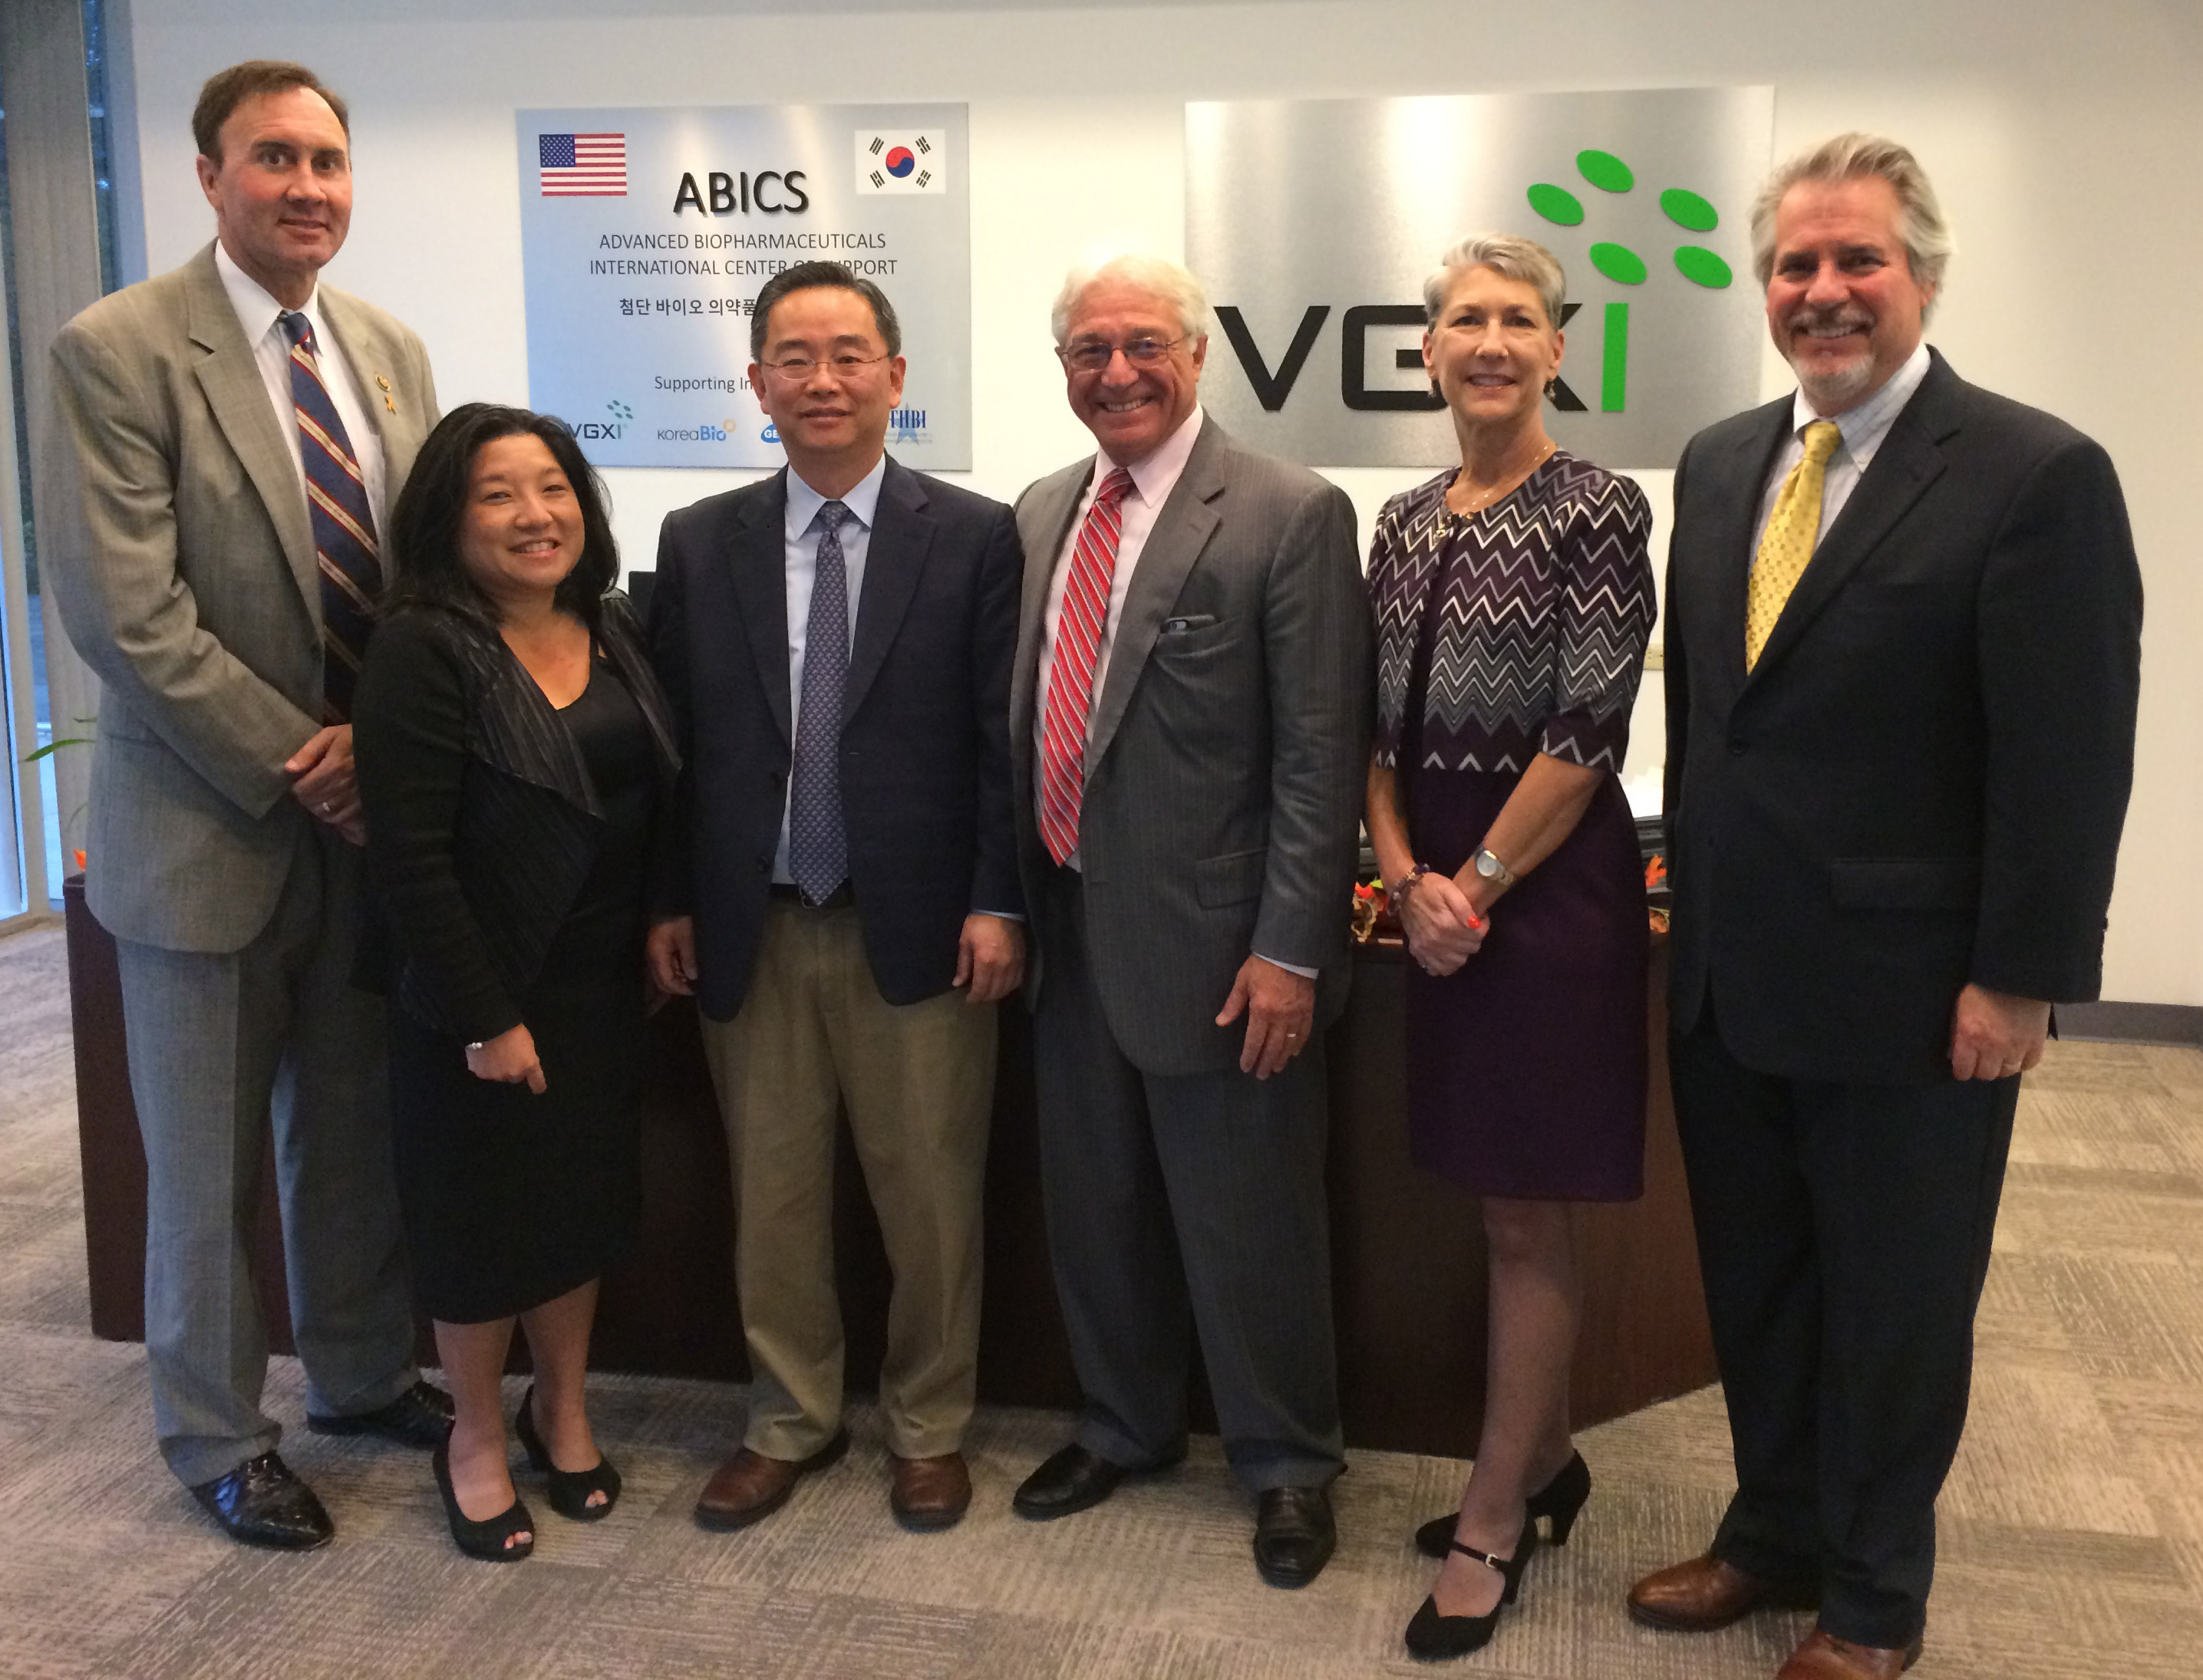 VGXI Hosts Roundtable Discussion with Congressman Olson